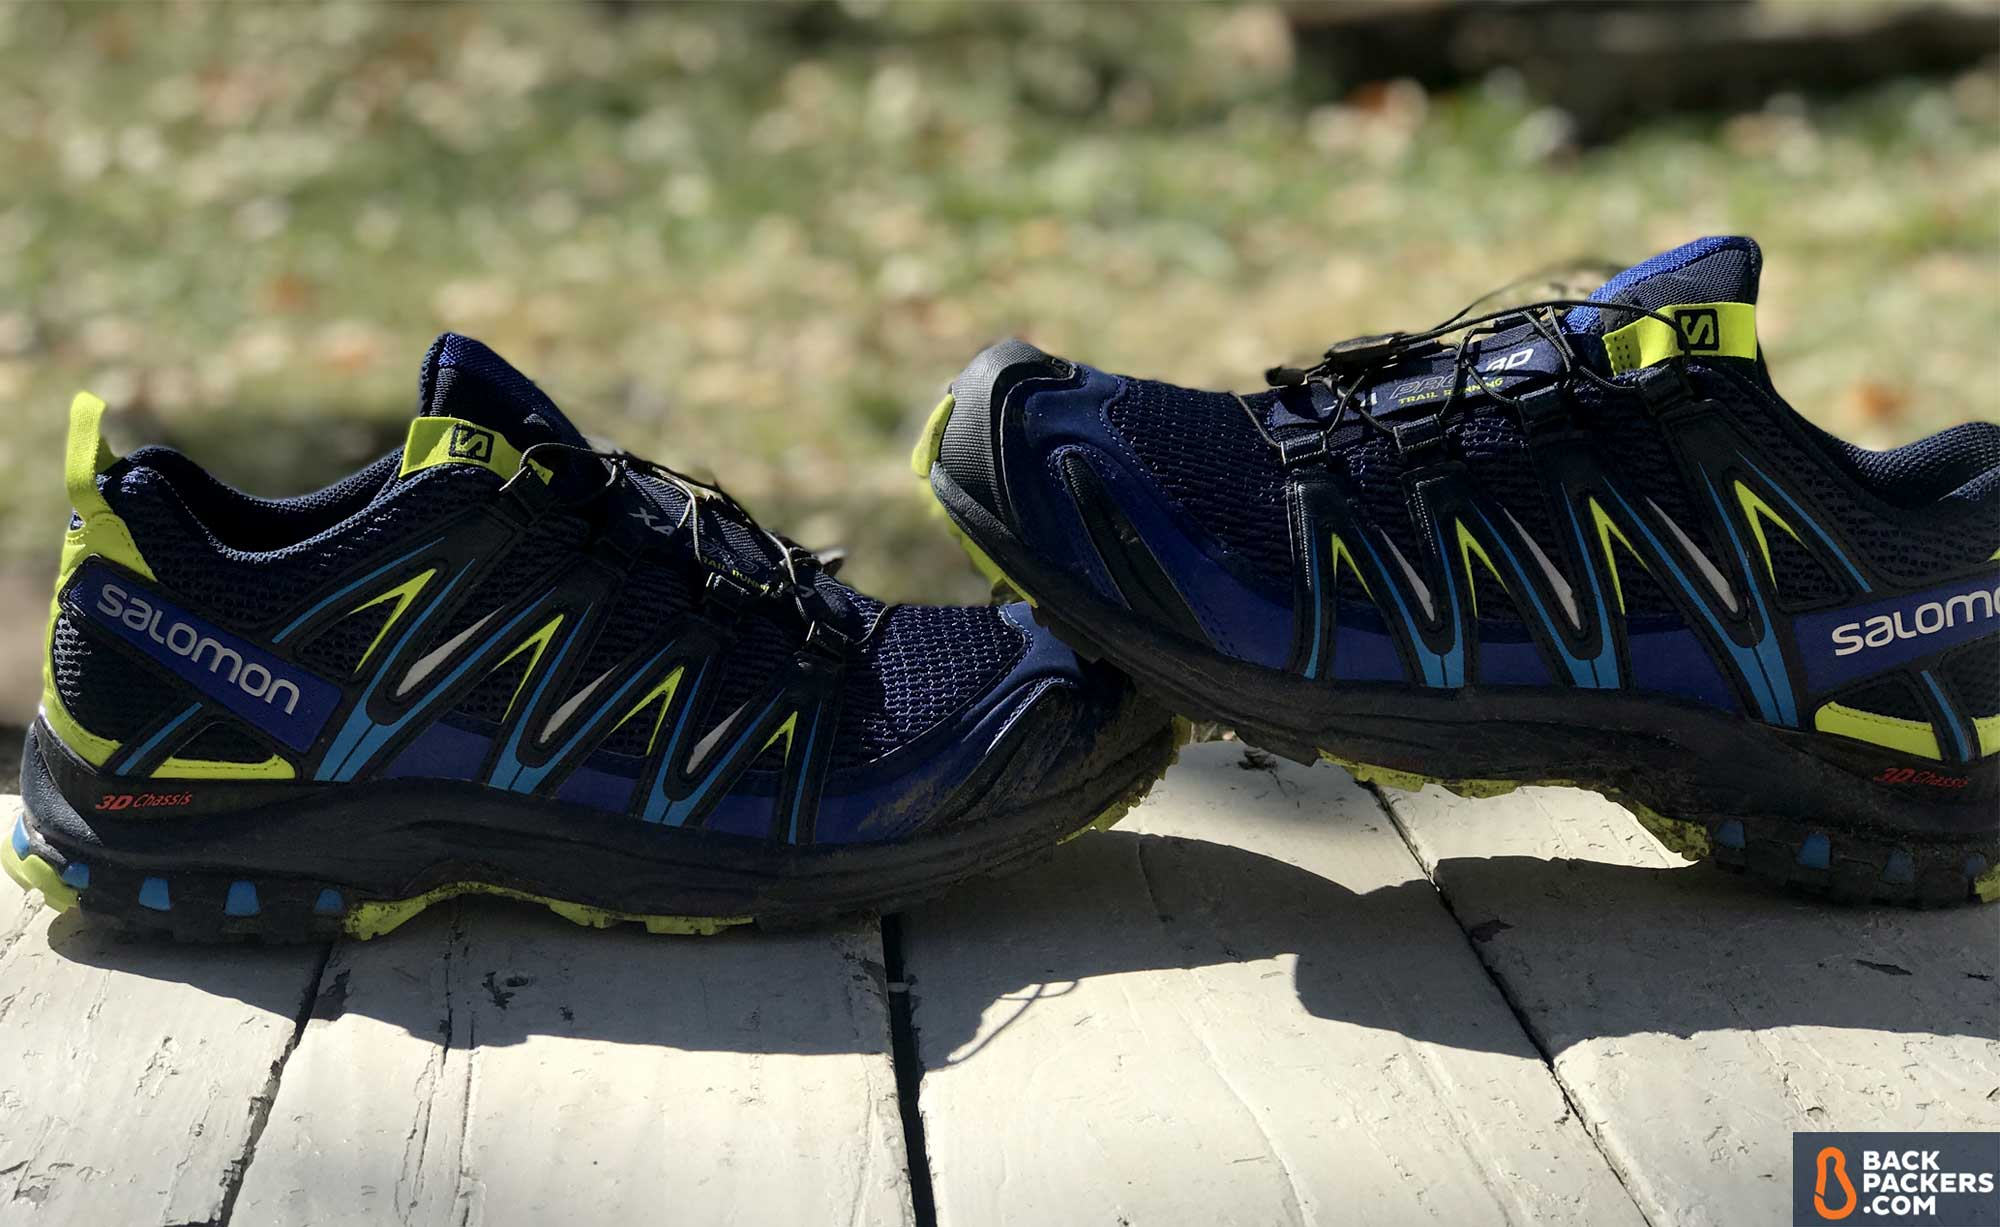 Salomon Xa Pro 3d Review Trail Running Shoes Backpackers Com